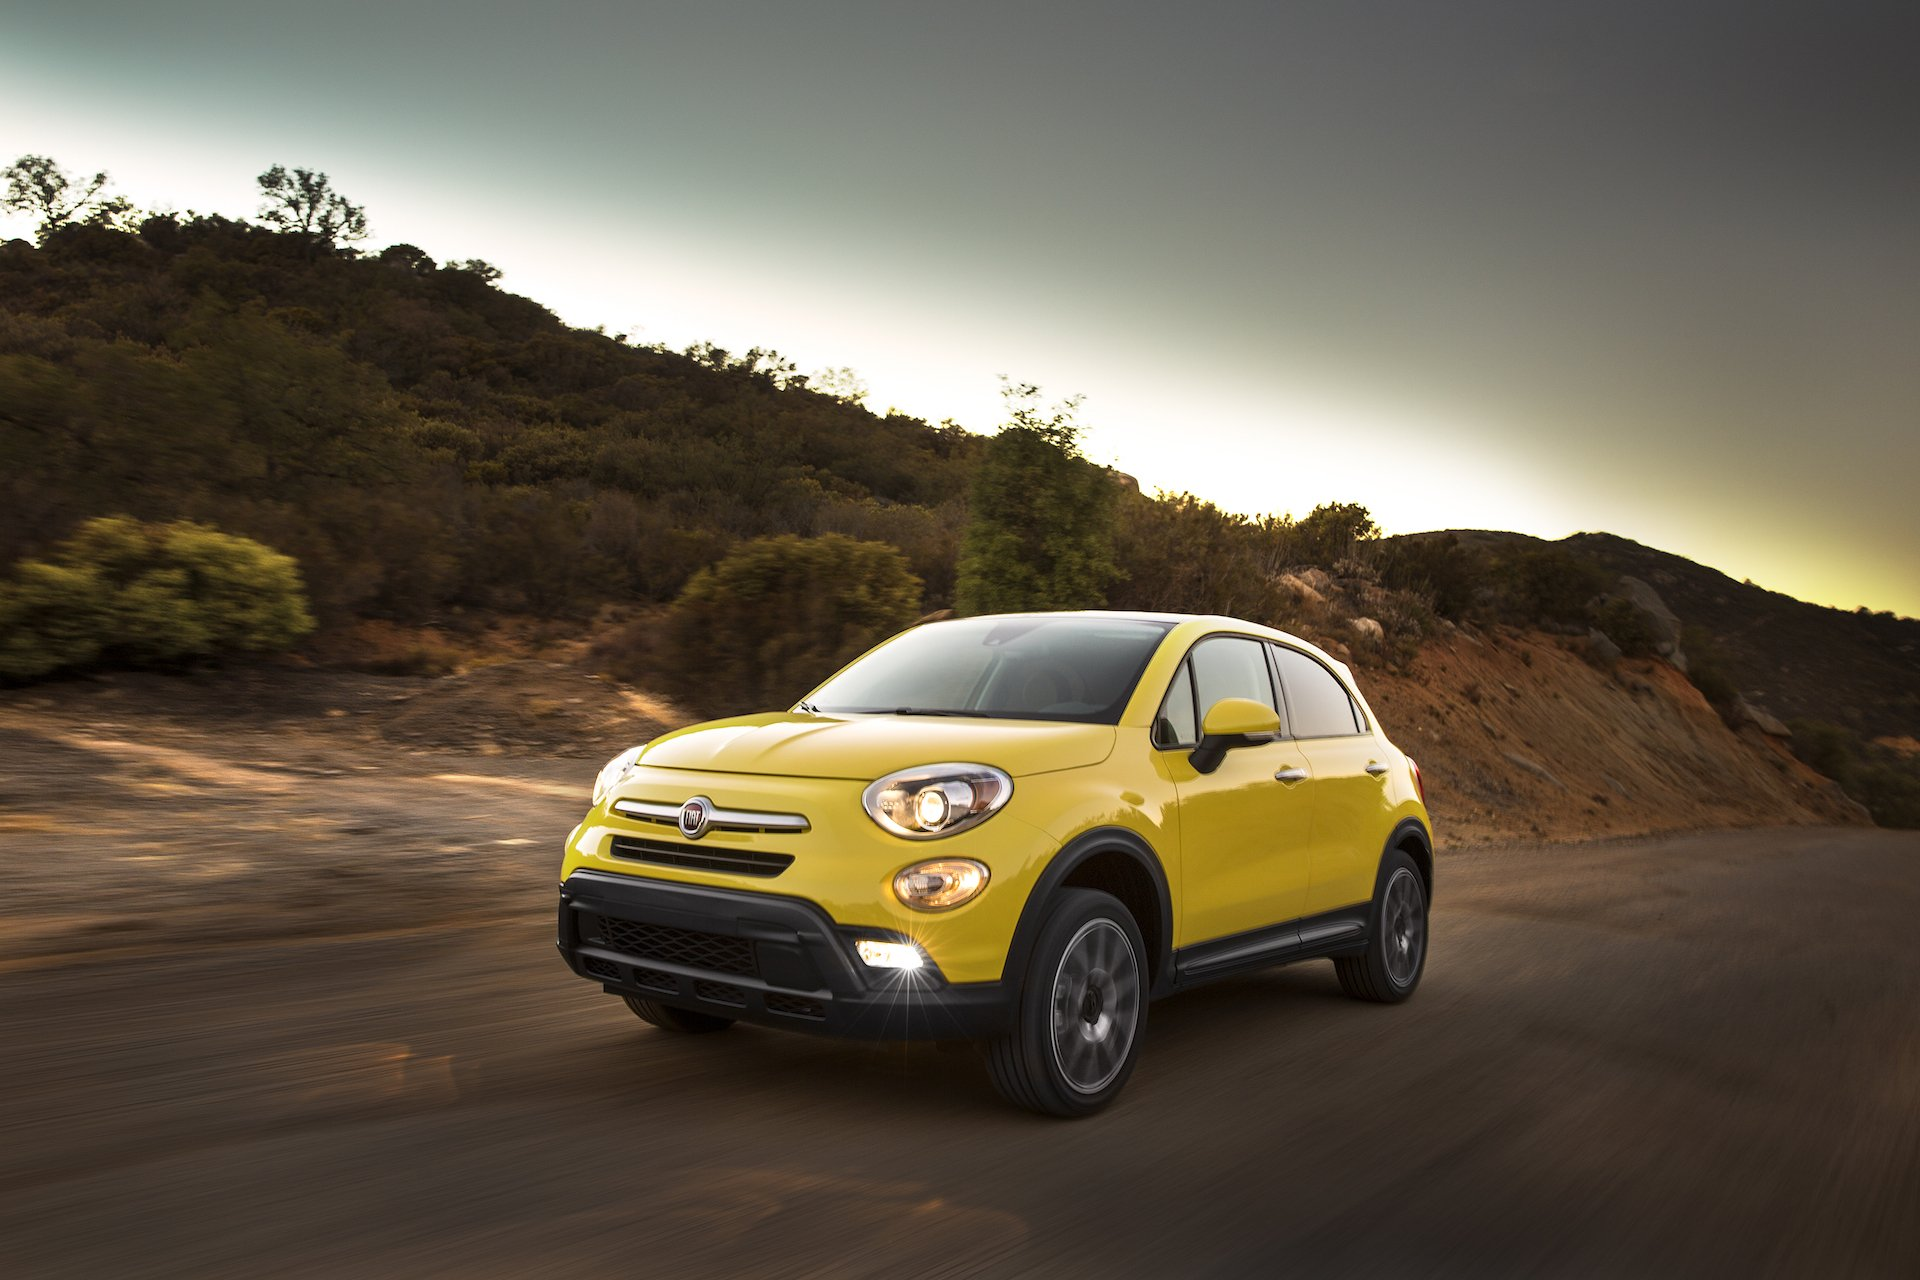 #2. 2016 Fiat 500X  is one of the best small crossover SUV models of the year